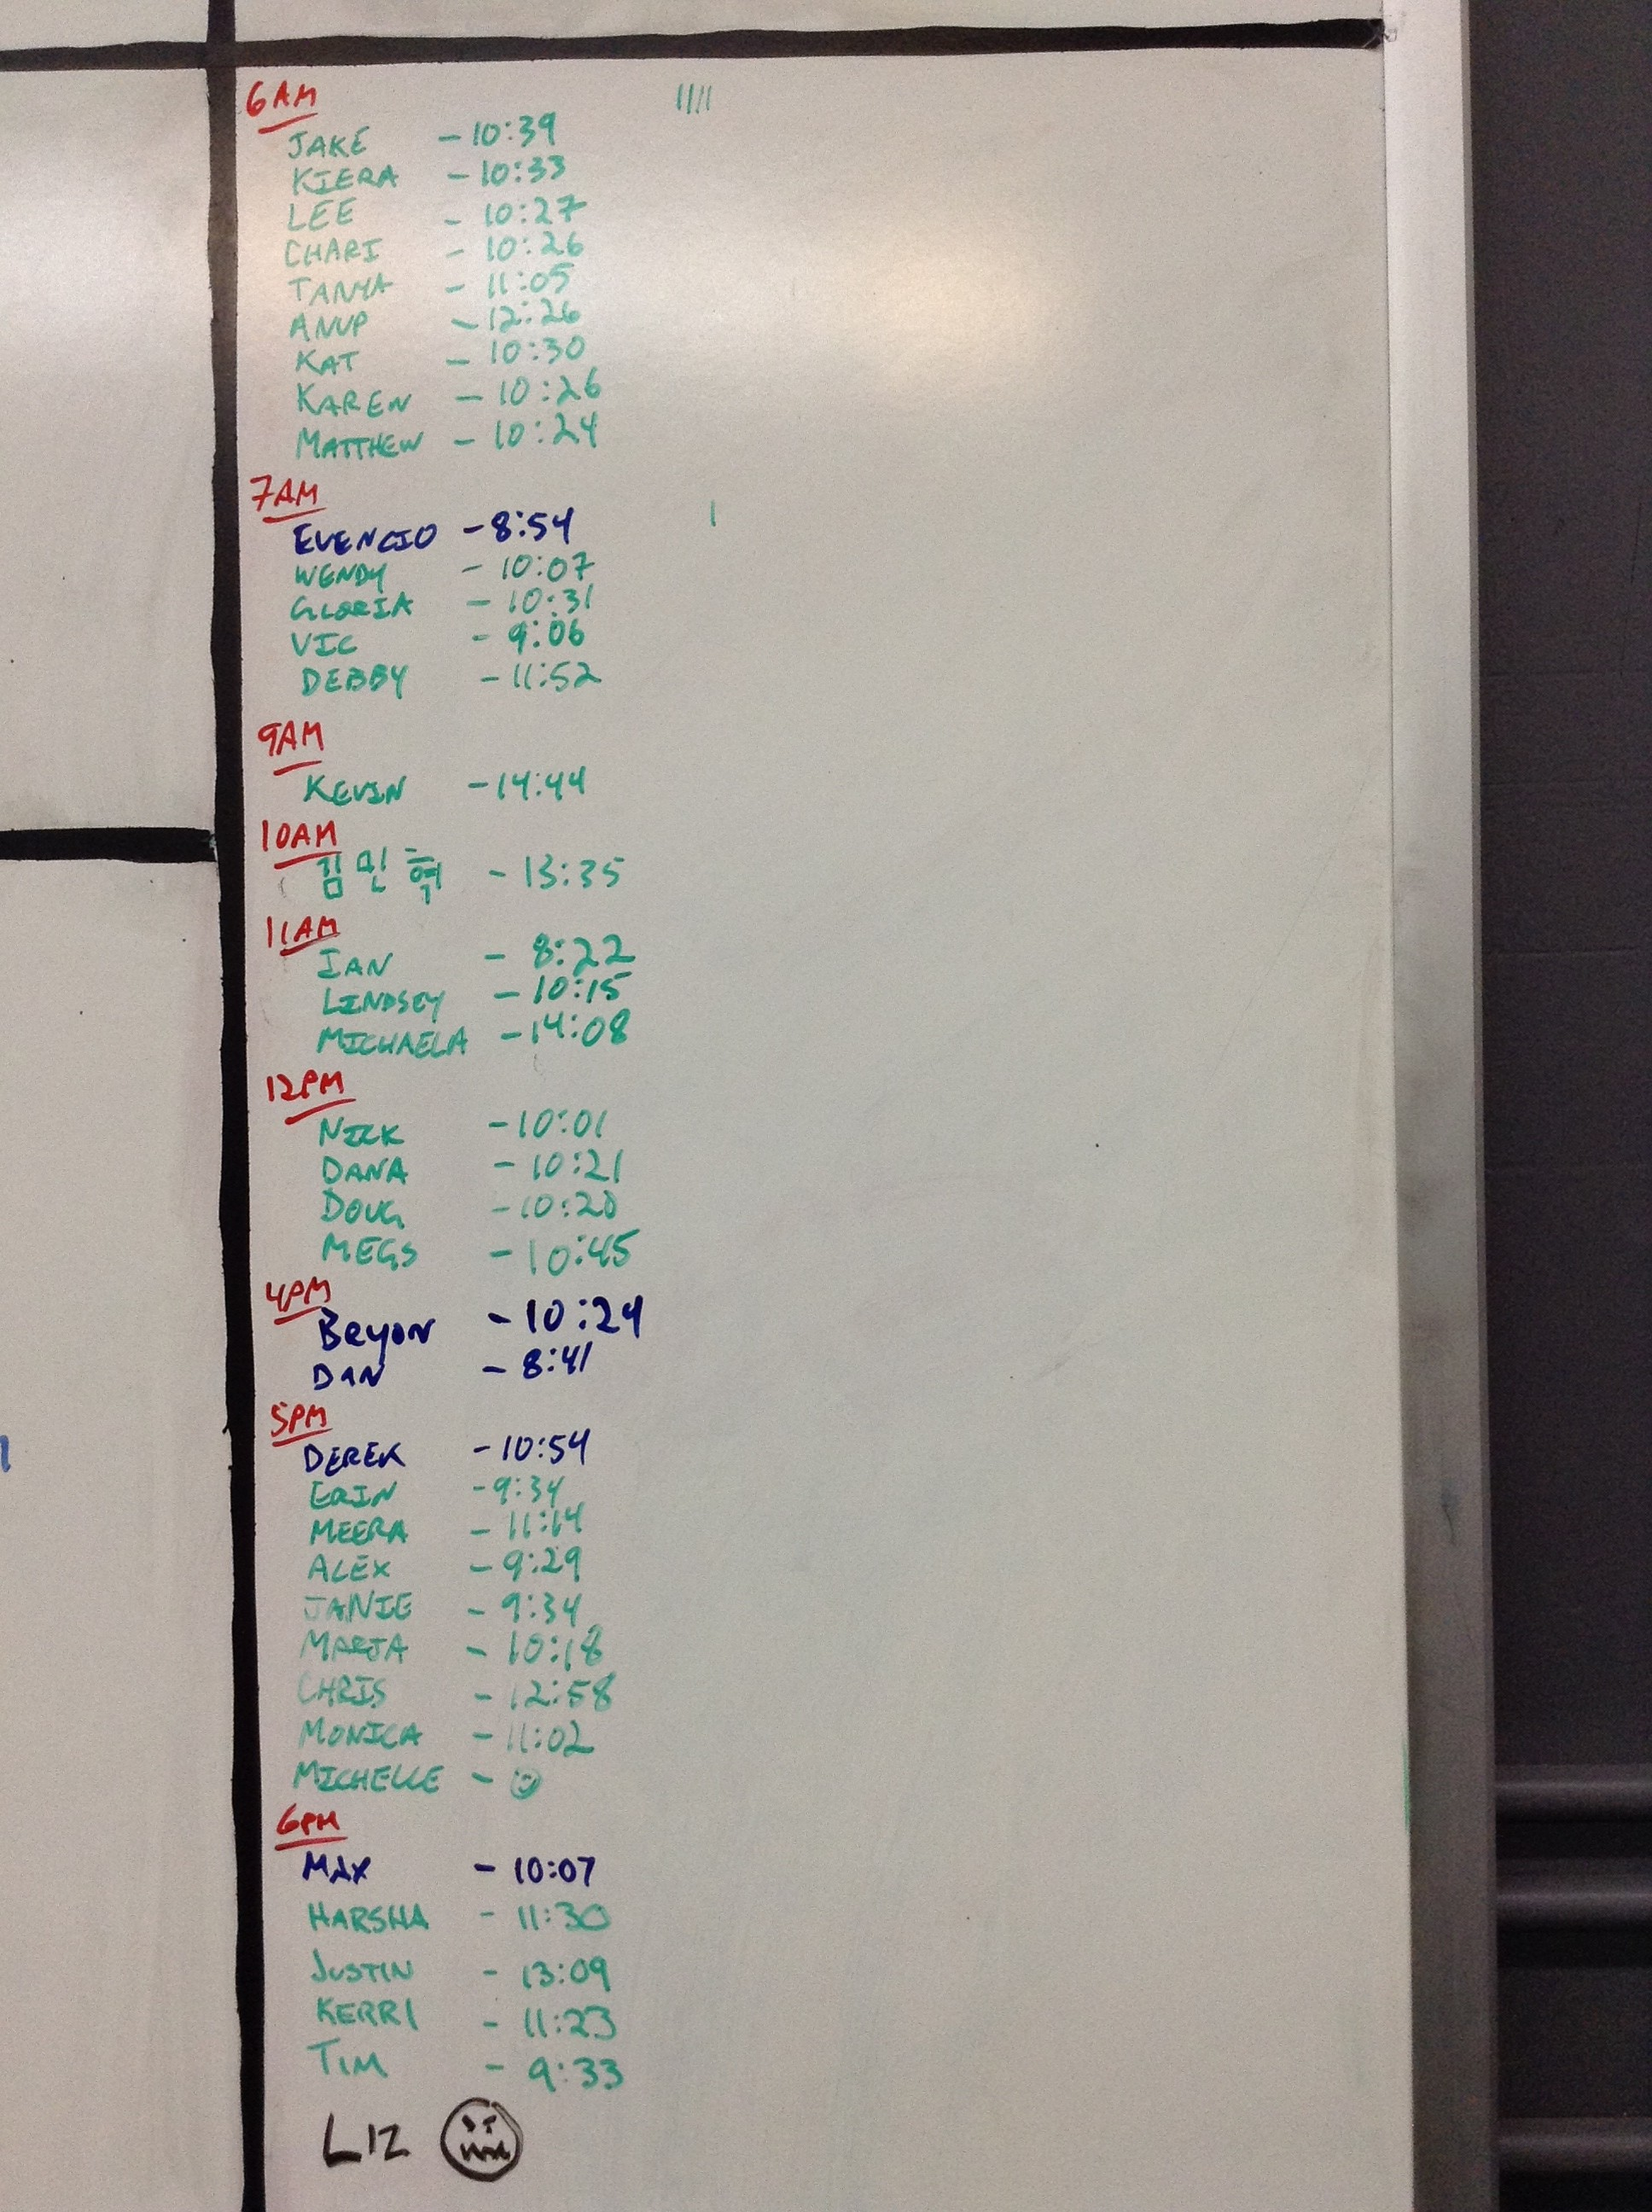 Aug 27 WOD Results